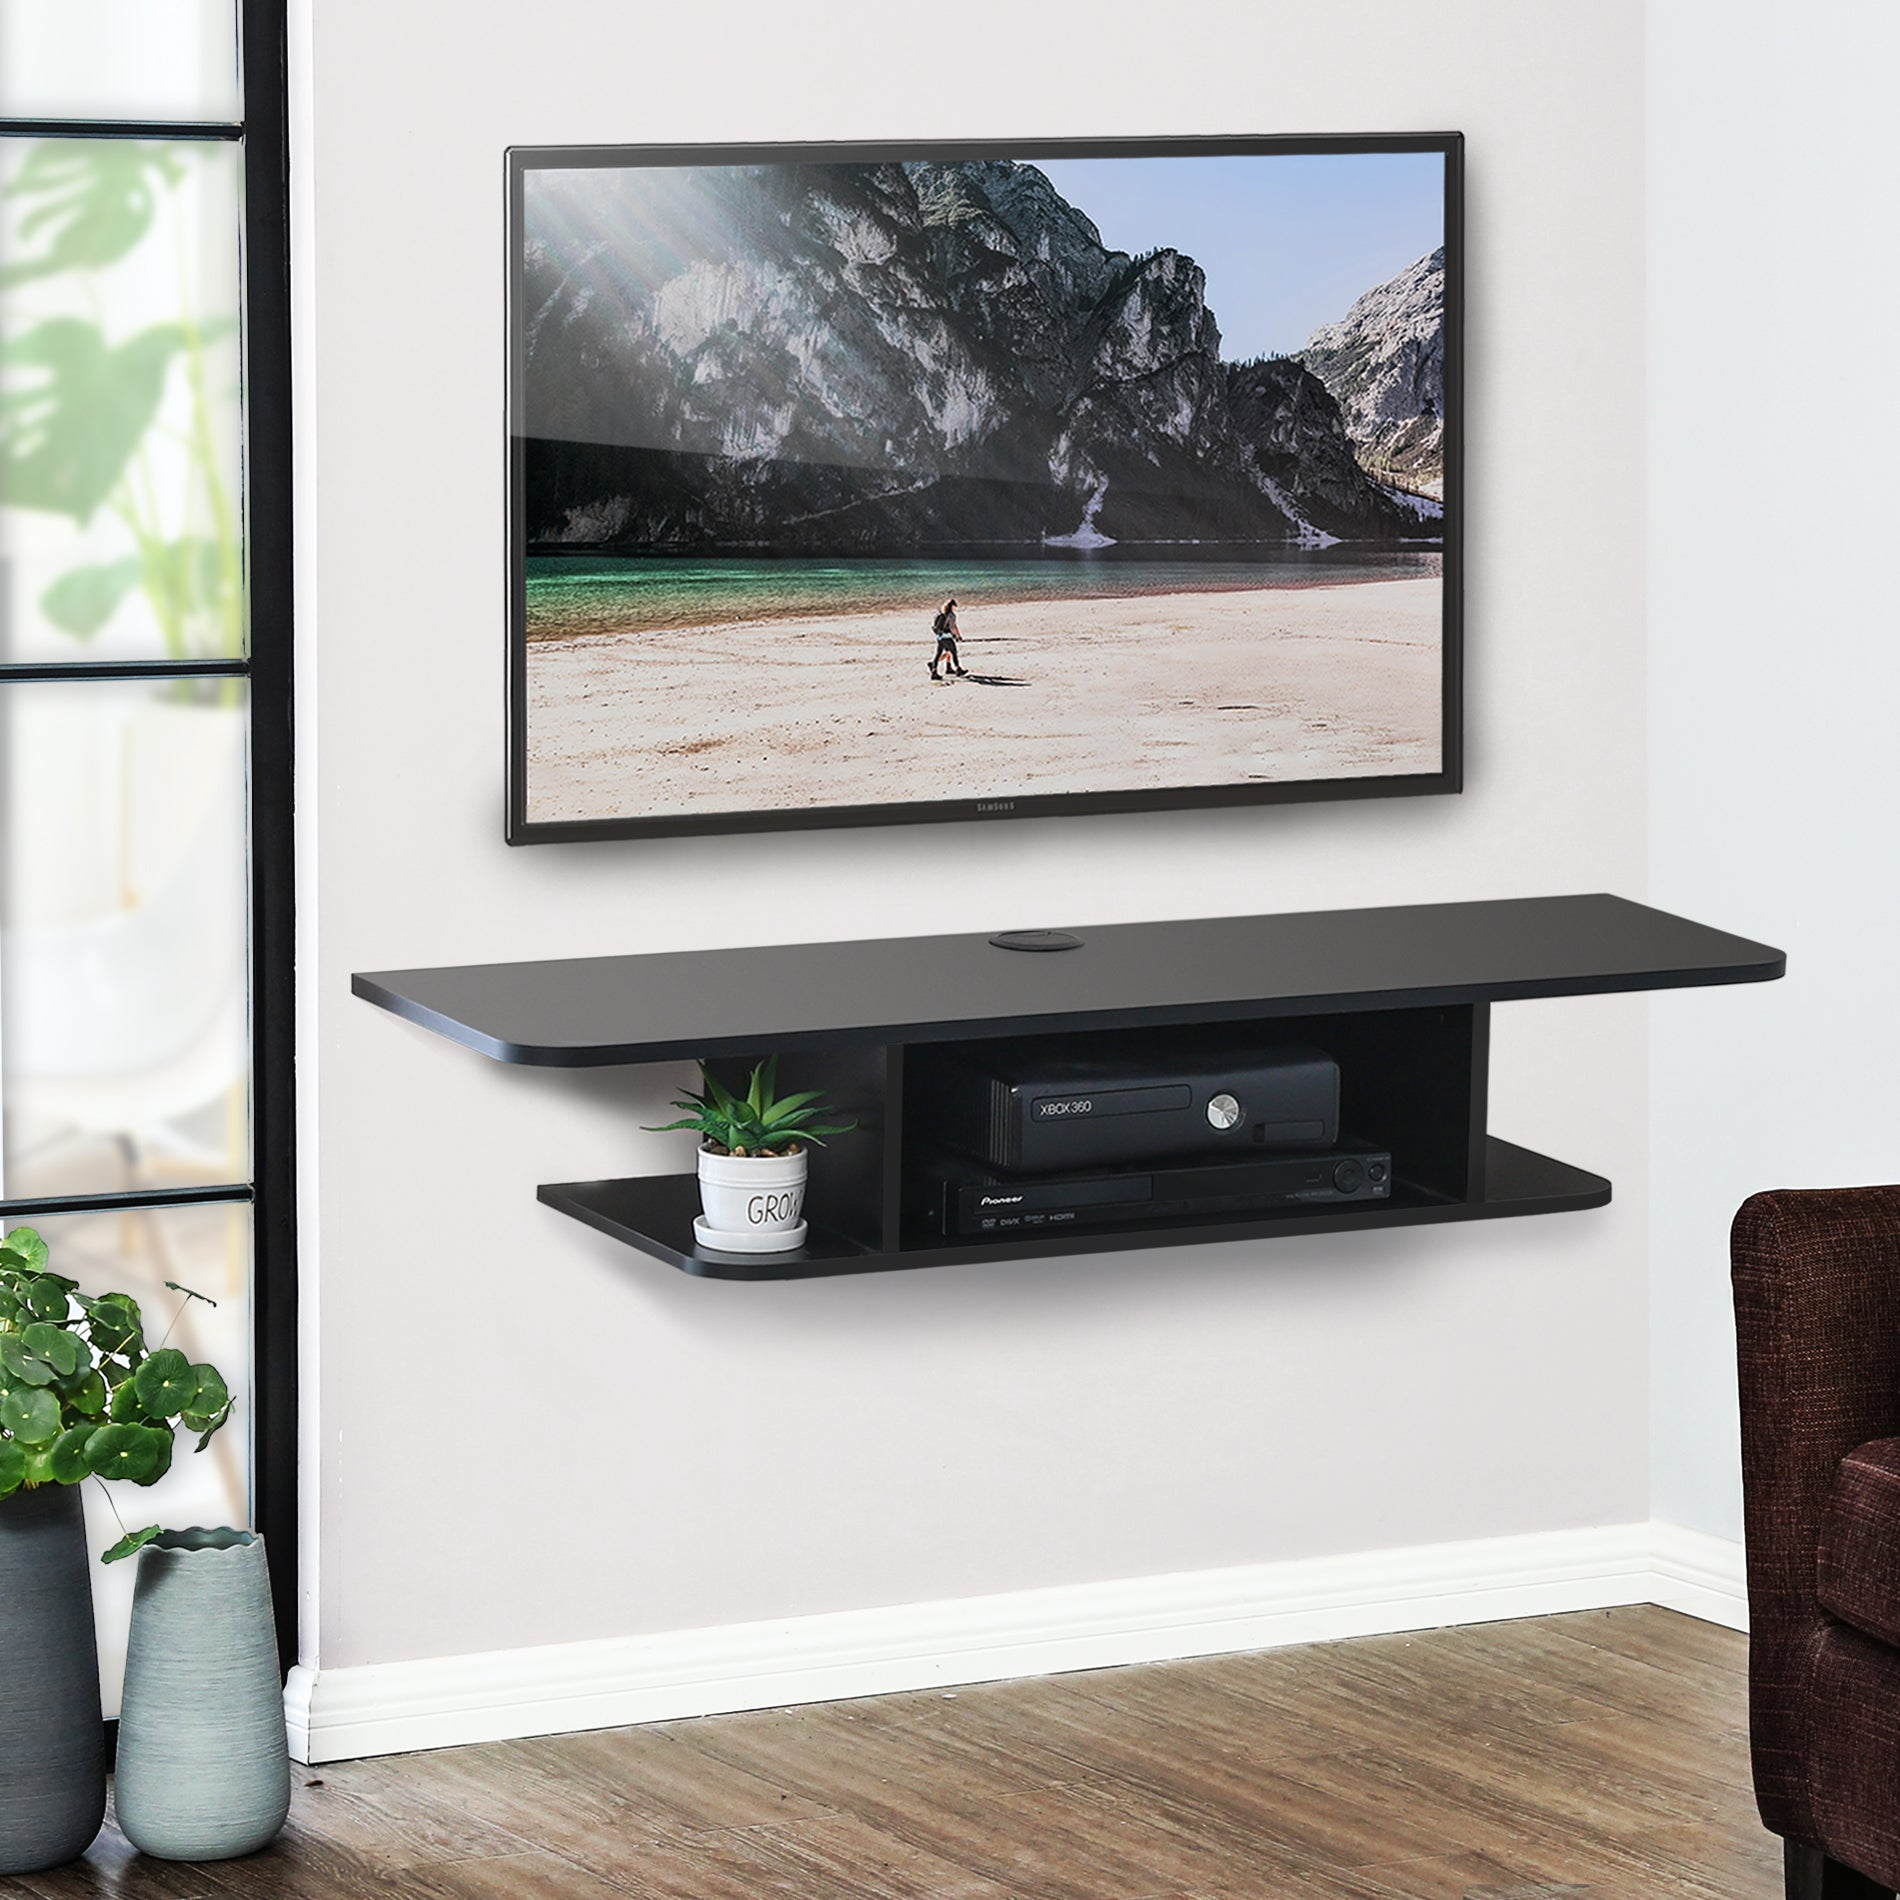 ematic 3 shelf dvd player wall mount instructions